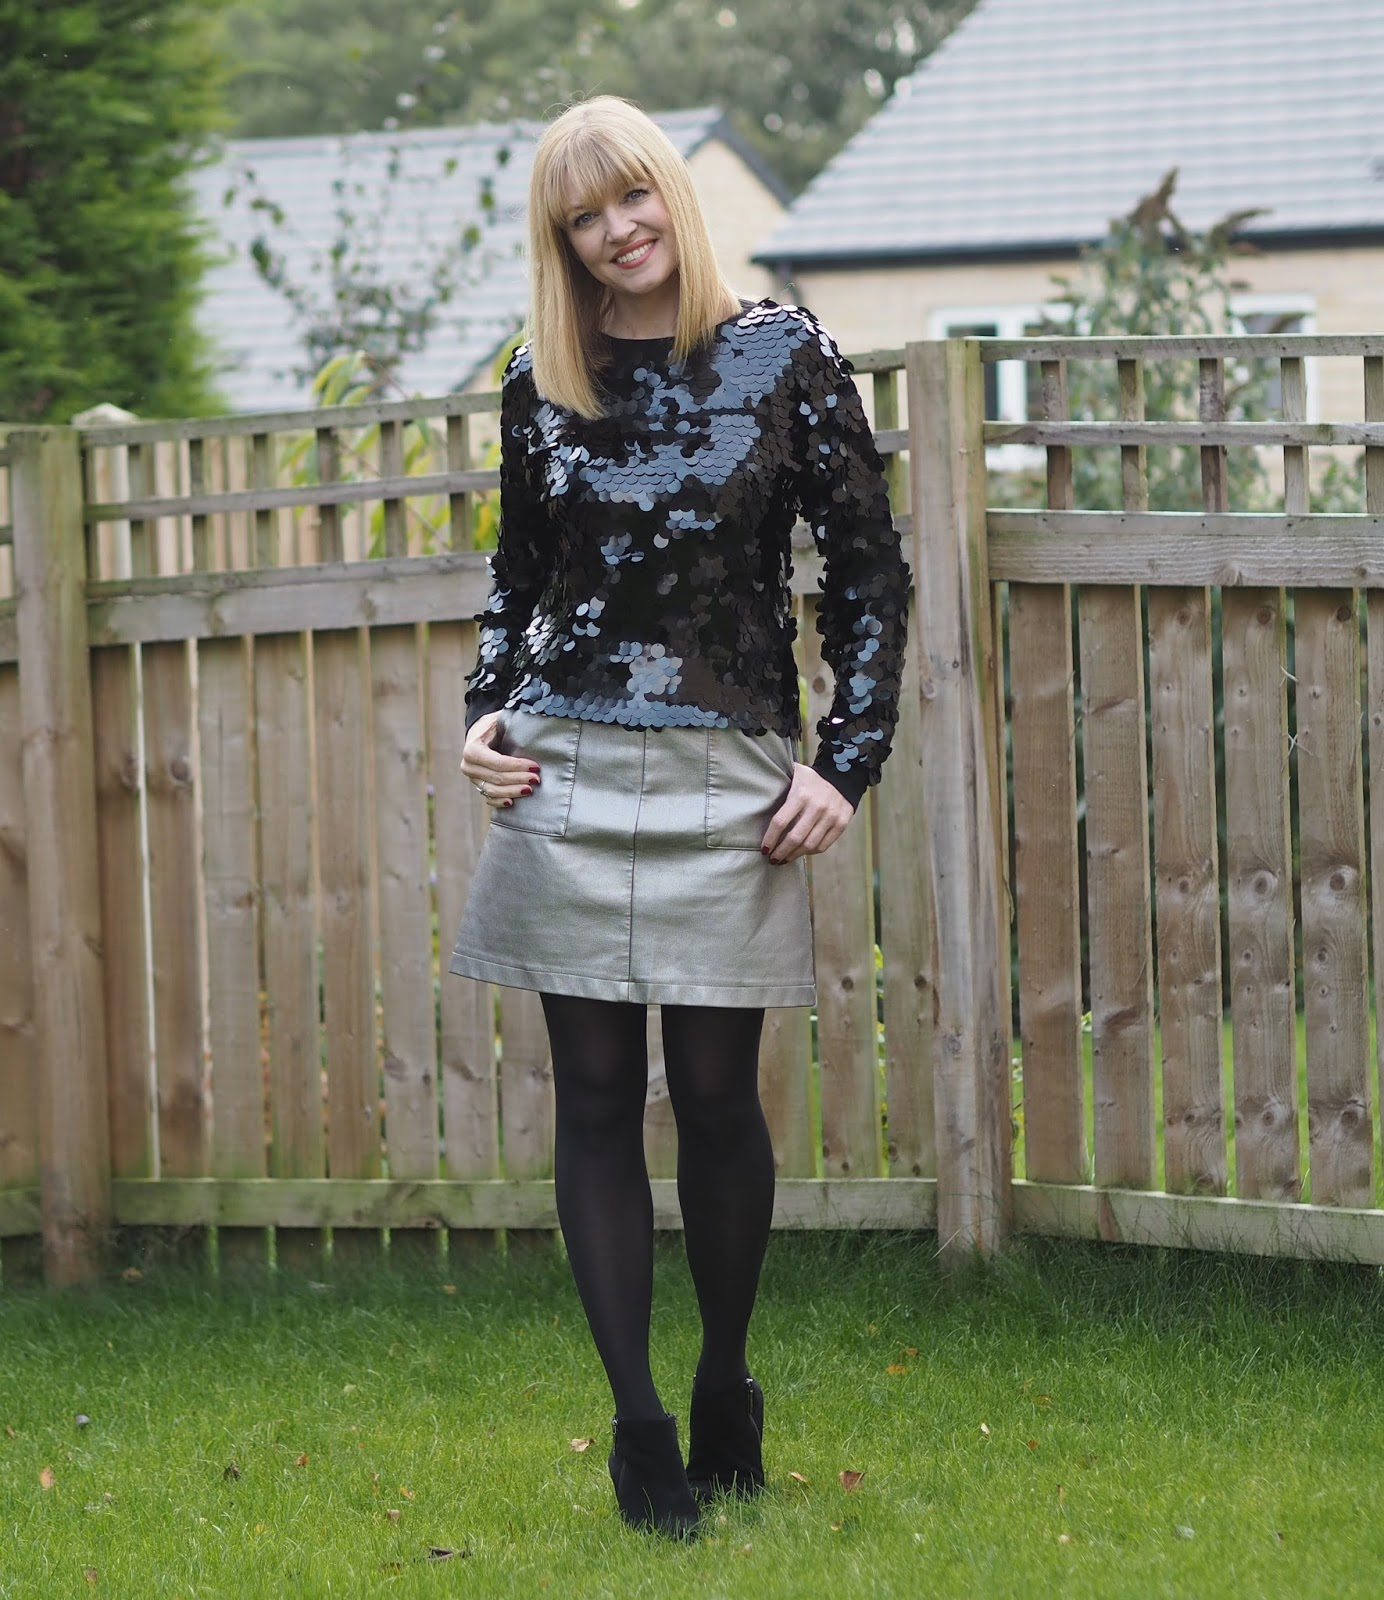 Black paillette sequin sweatshirt, metallic faux leather skirt, ankle boots, over 40